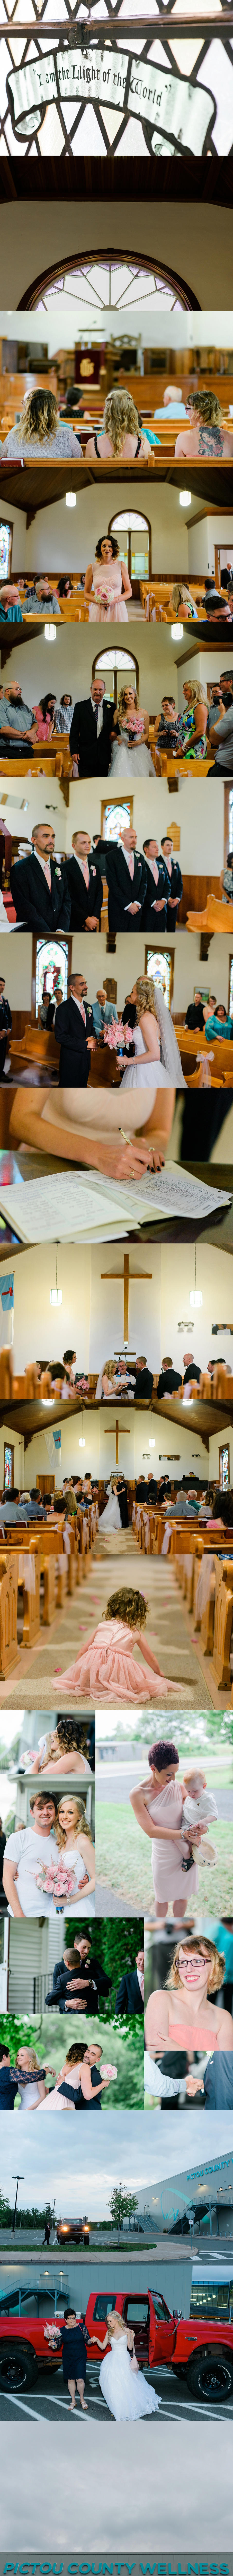 church ceremony followed by shots of the bride and groom making their way to the pictou county wellness center